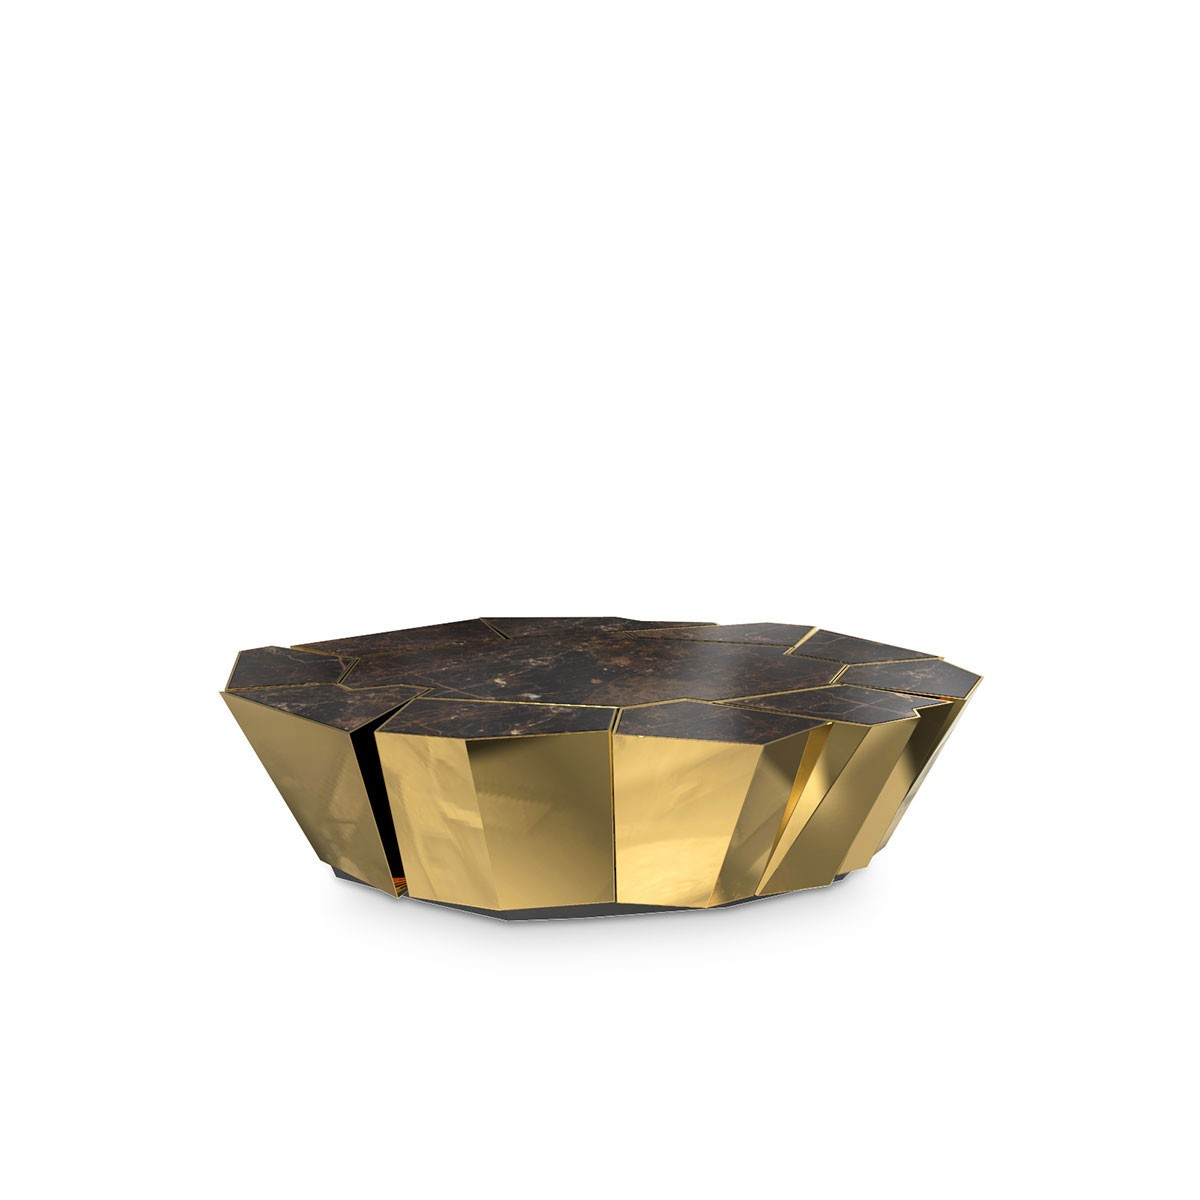 Top Golden Coffee Tables golden coffee tables Top Golden Coffee Tables crackle2